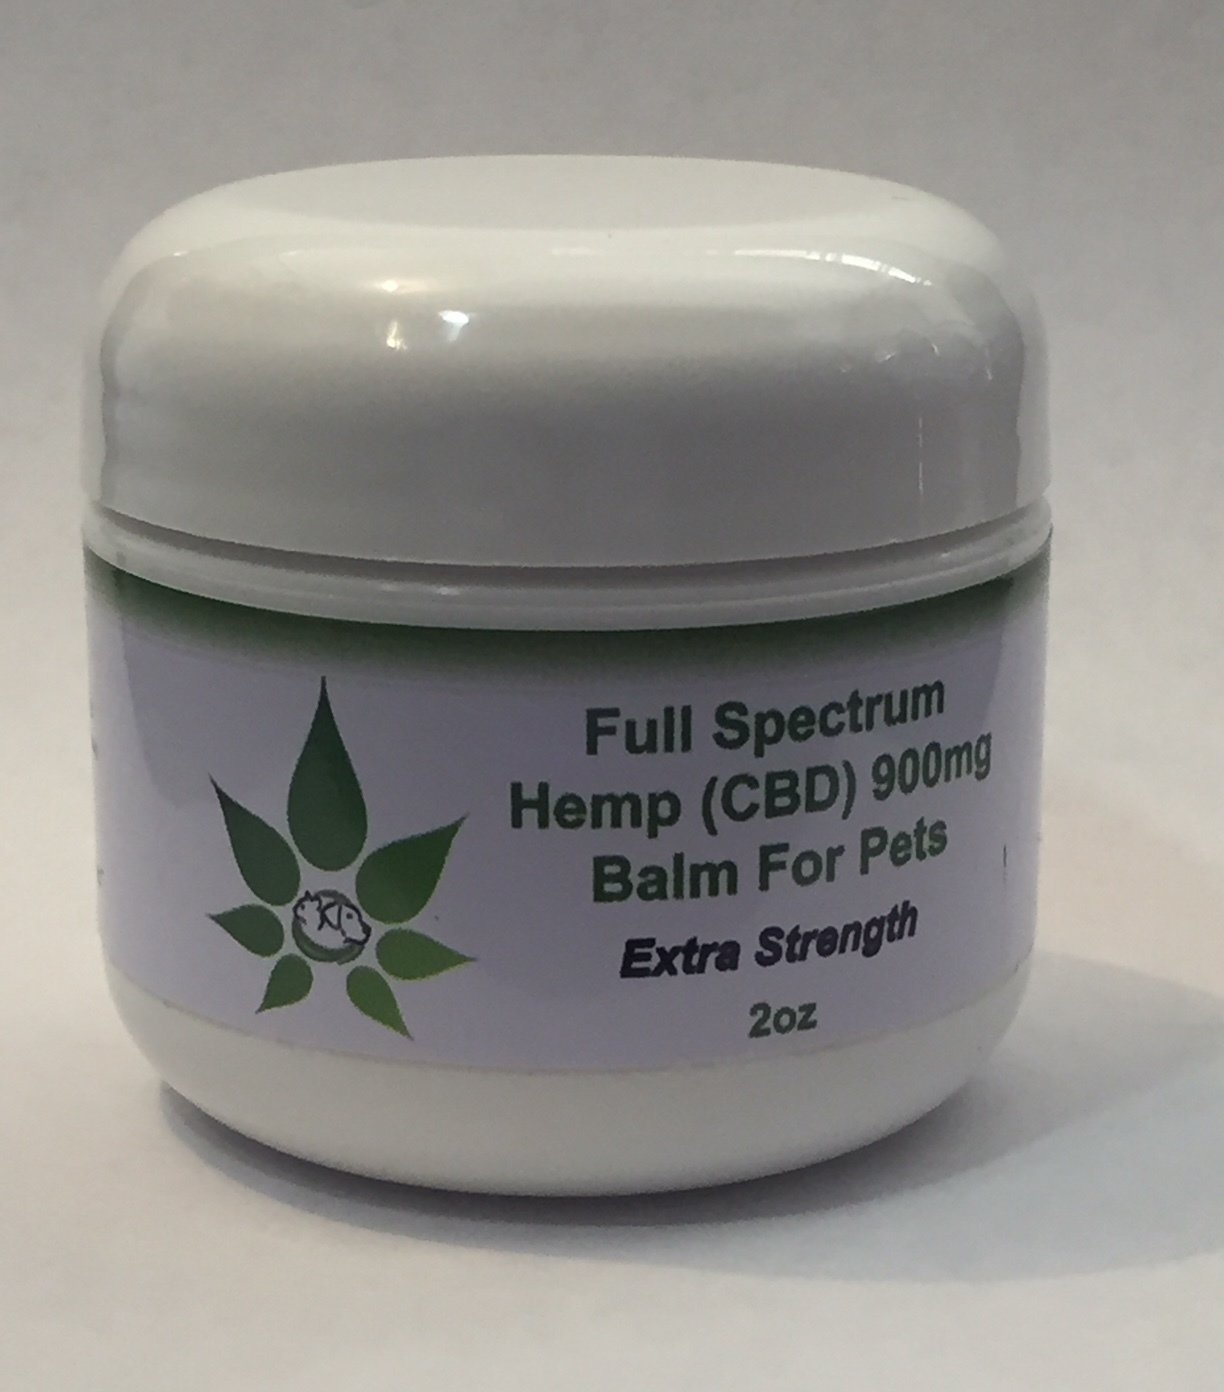 For Pets - Full Spectrum Hemp (CBD) Balm 900mg Extra Strength 2oz - Intensive Pain Relief!